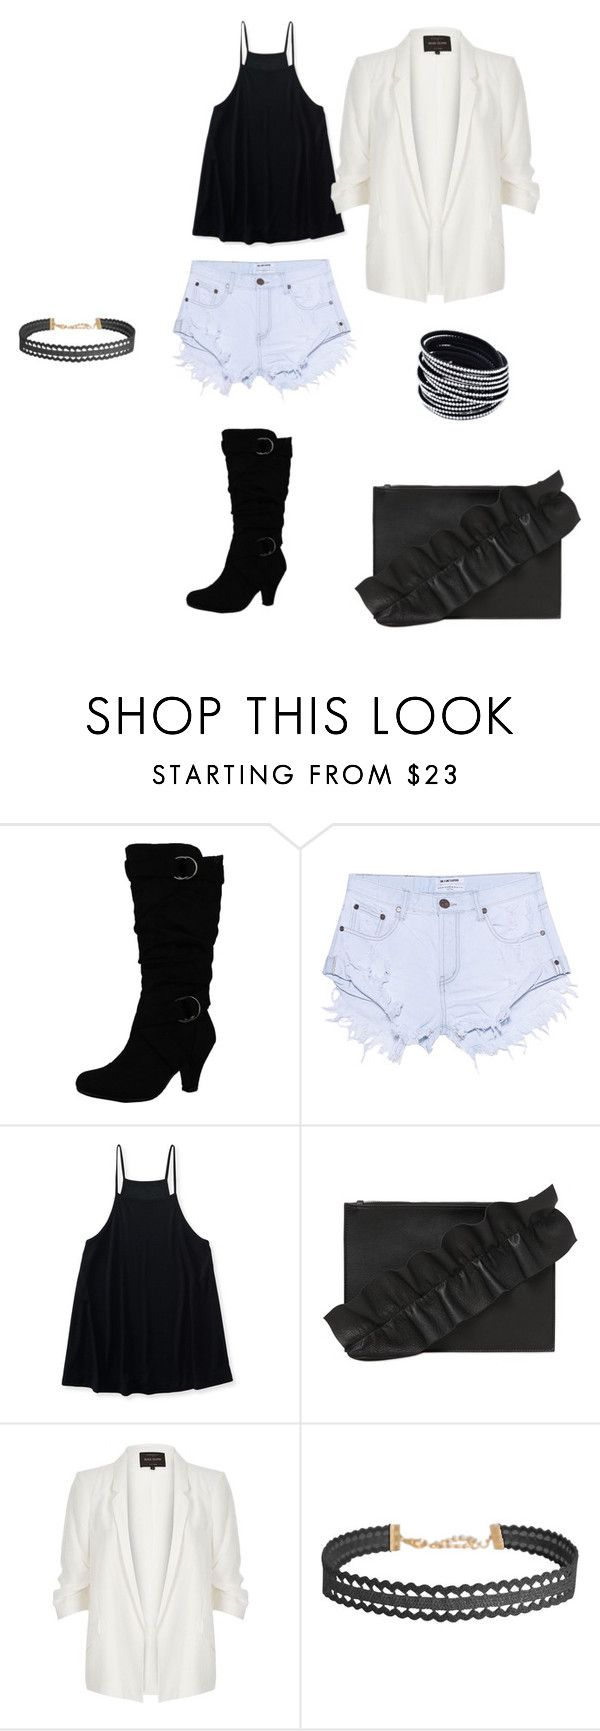 """Bez naslova #9"" by semysemy ❤ liked on Polyvore featuring One Teaspoon, Aéropostale, MSGM, River Island and Humble Chic"